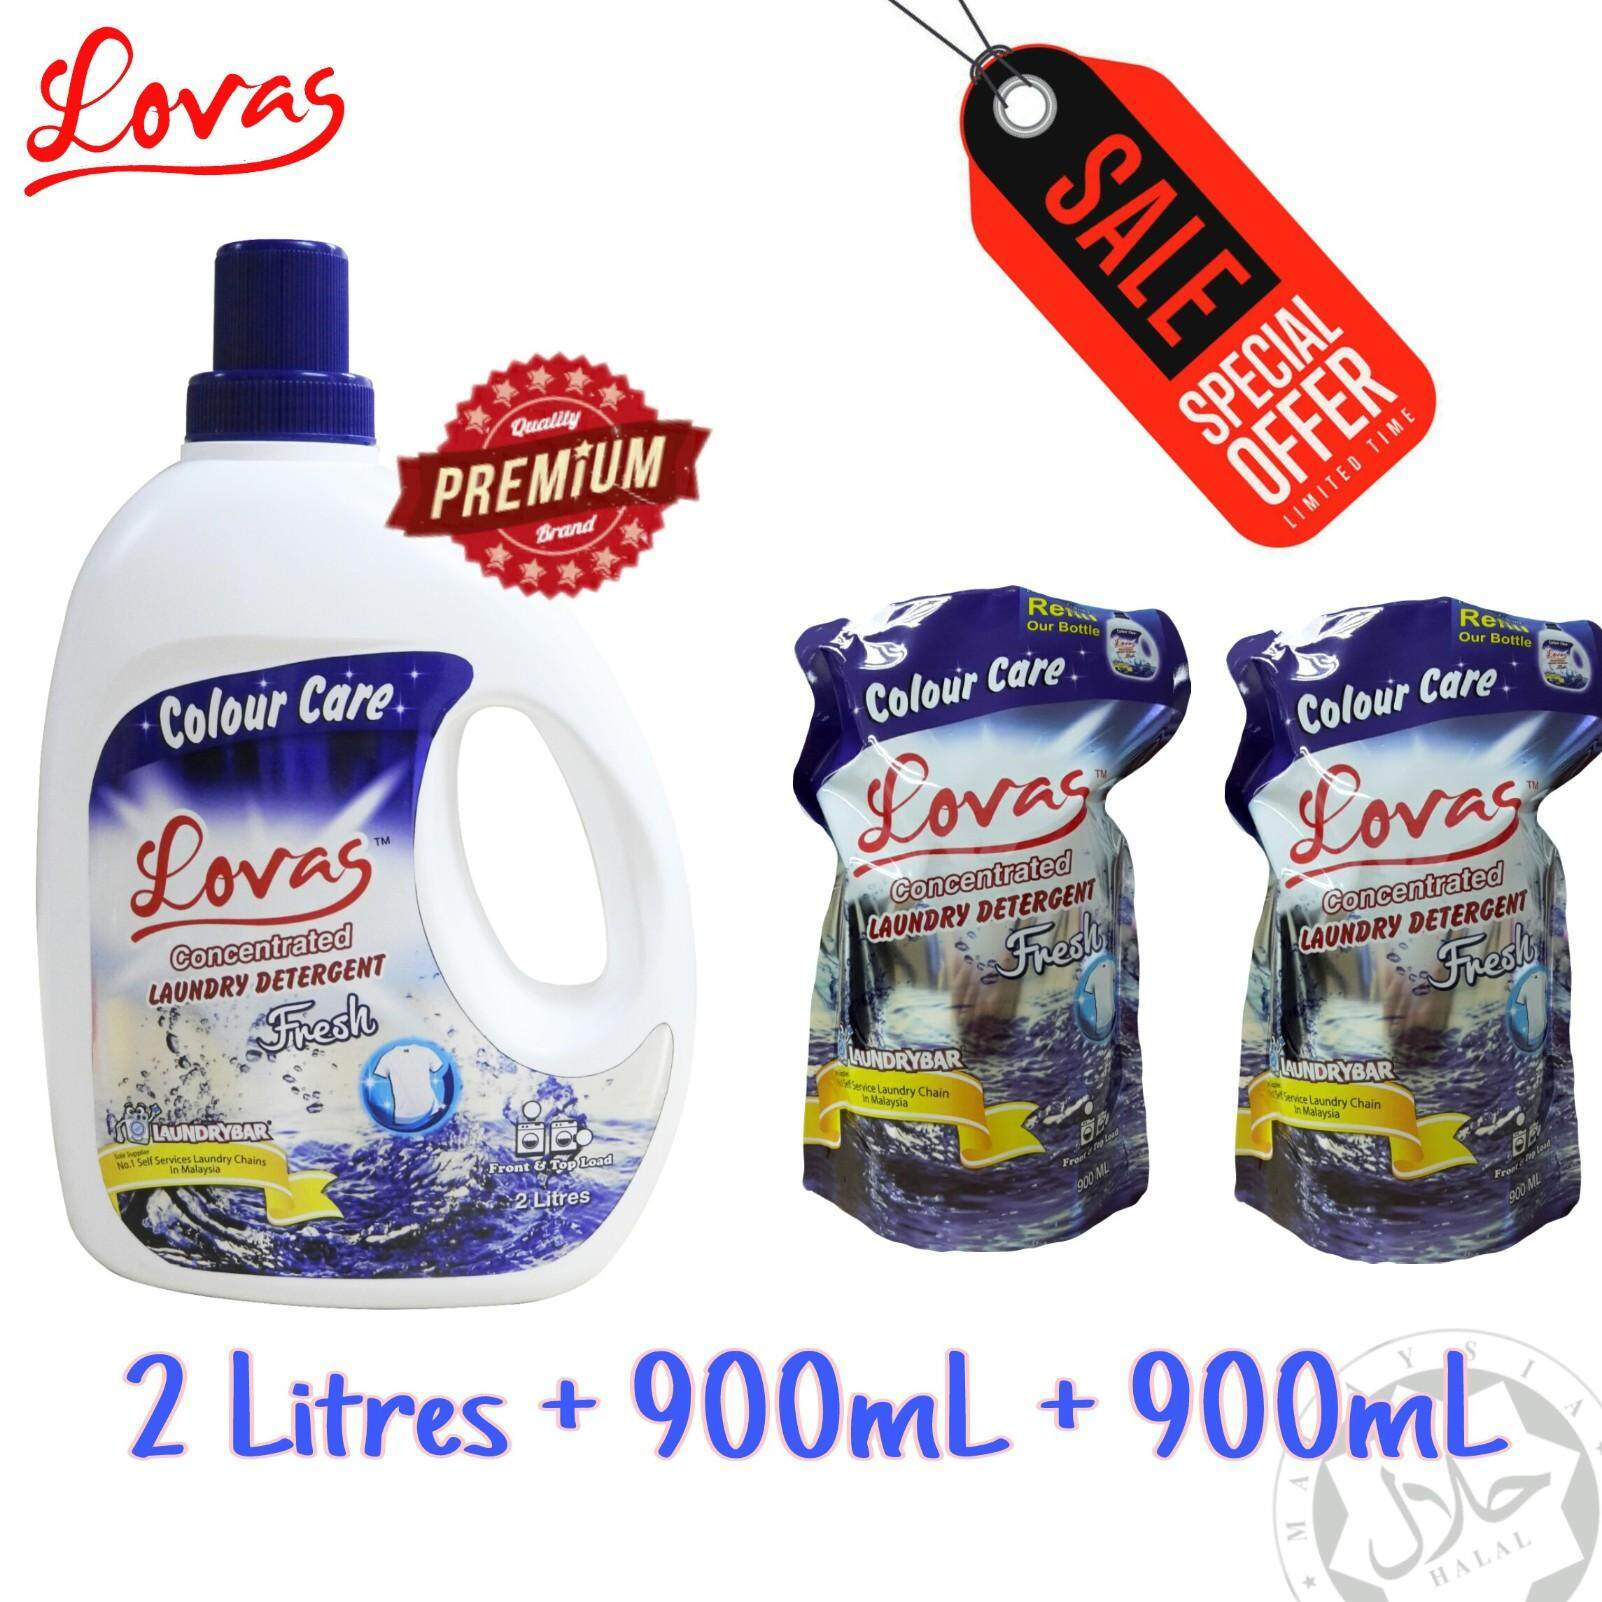 Value Pack - LOVAS Concentrated Laundry Detergent [Fresh]